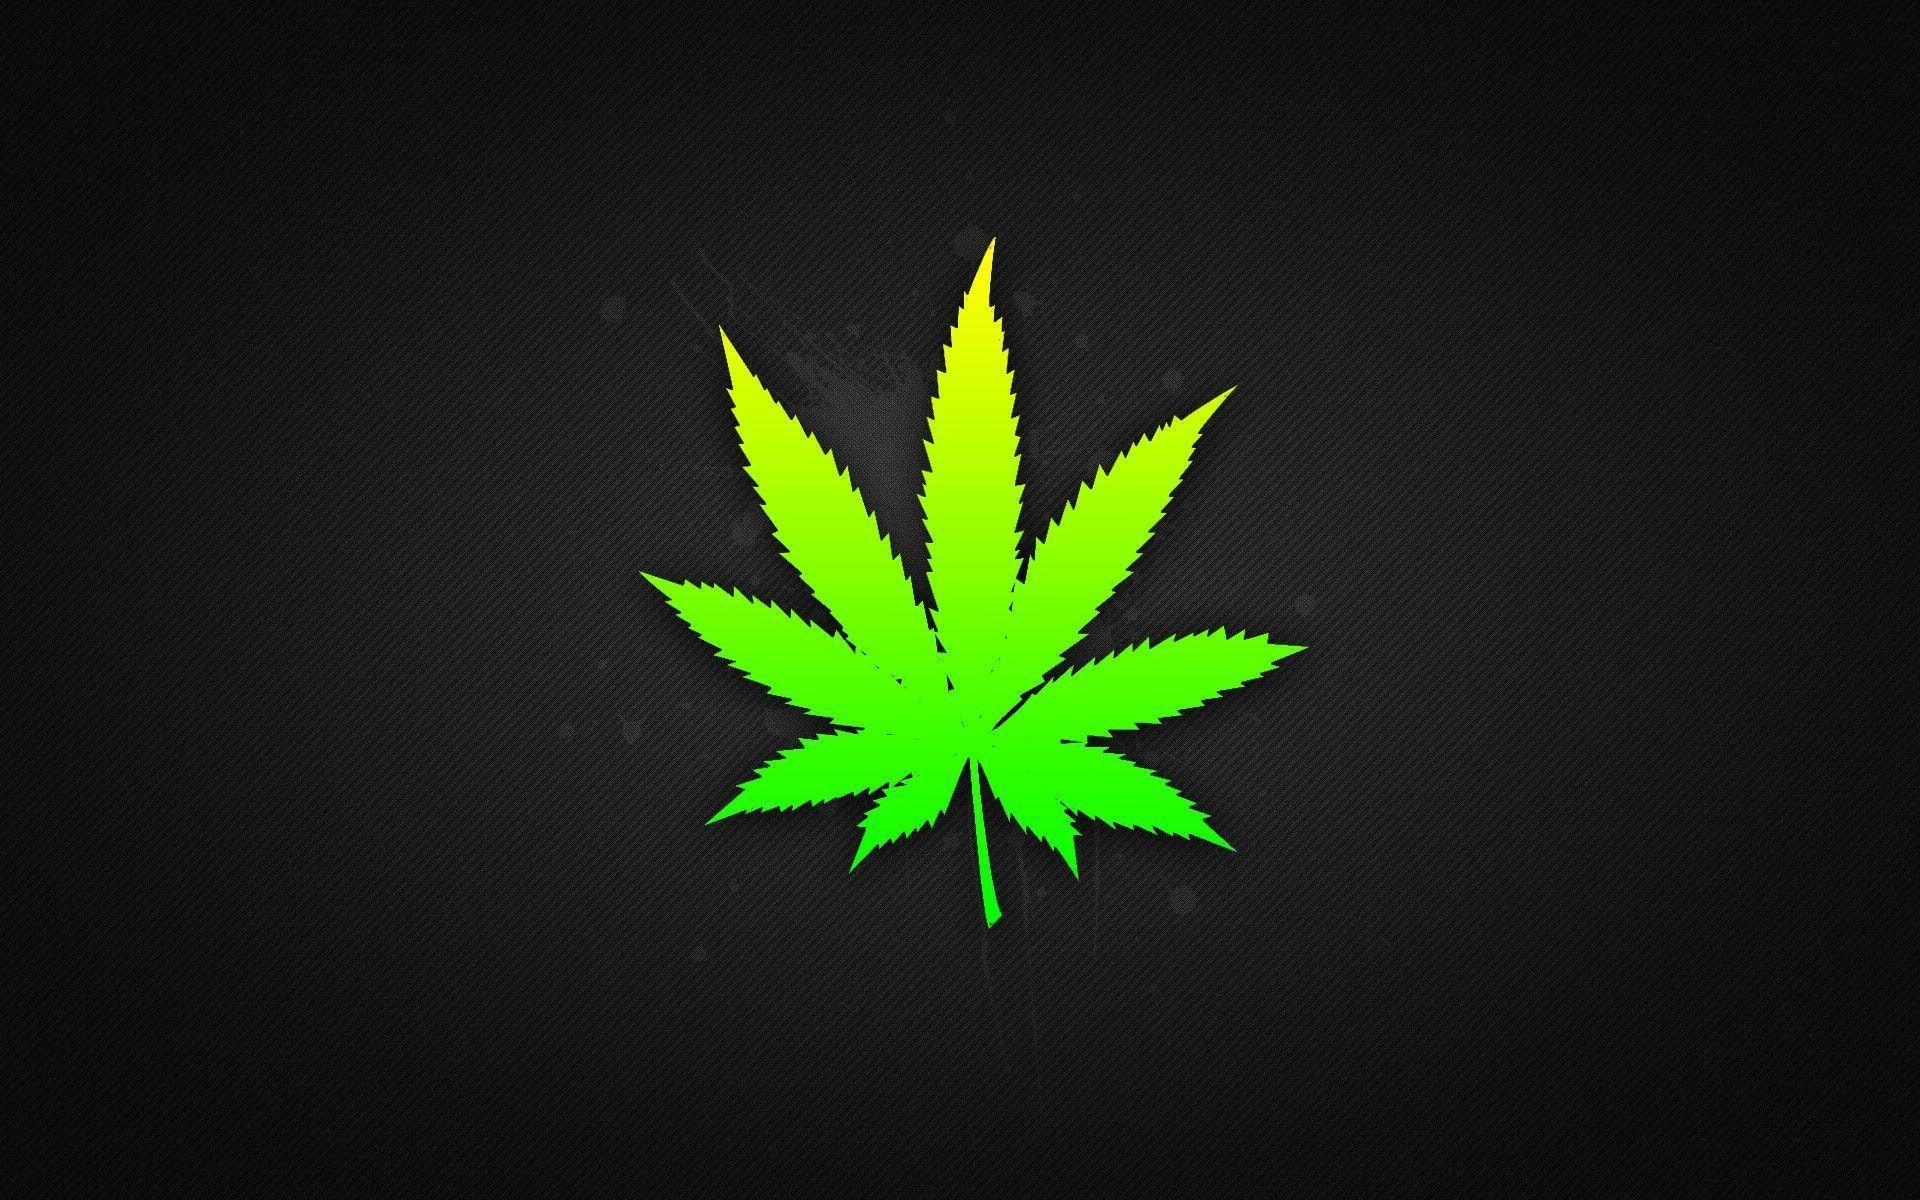 Weed Wallpaper For Desktop Images & Pictures - Becuo